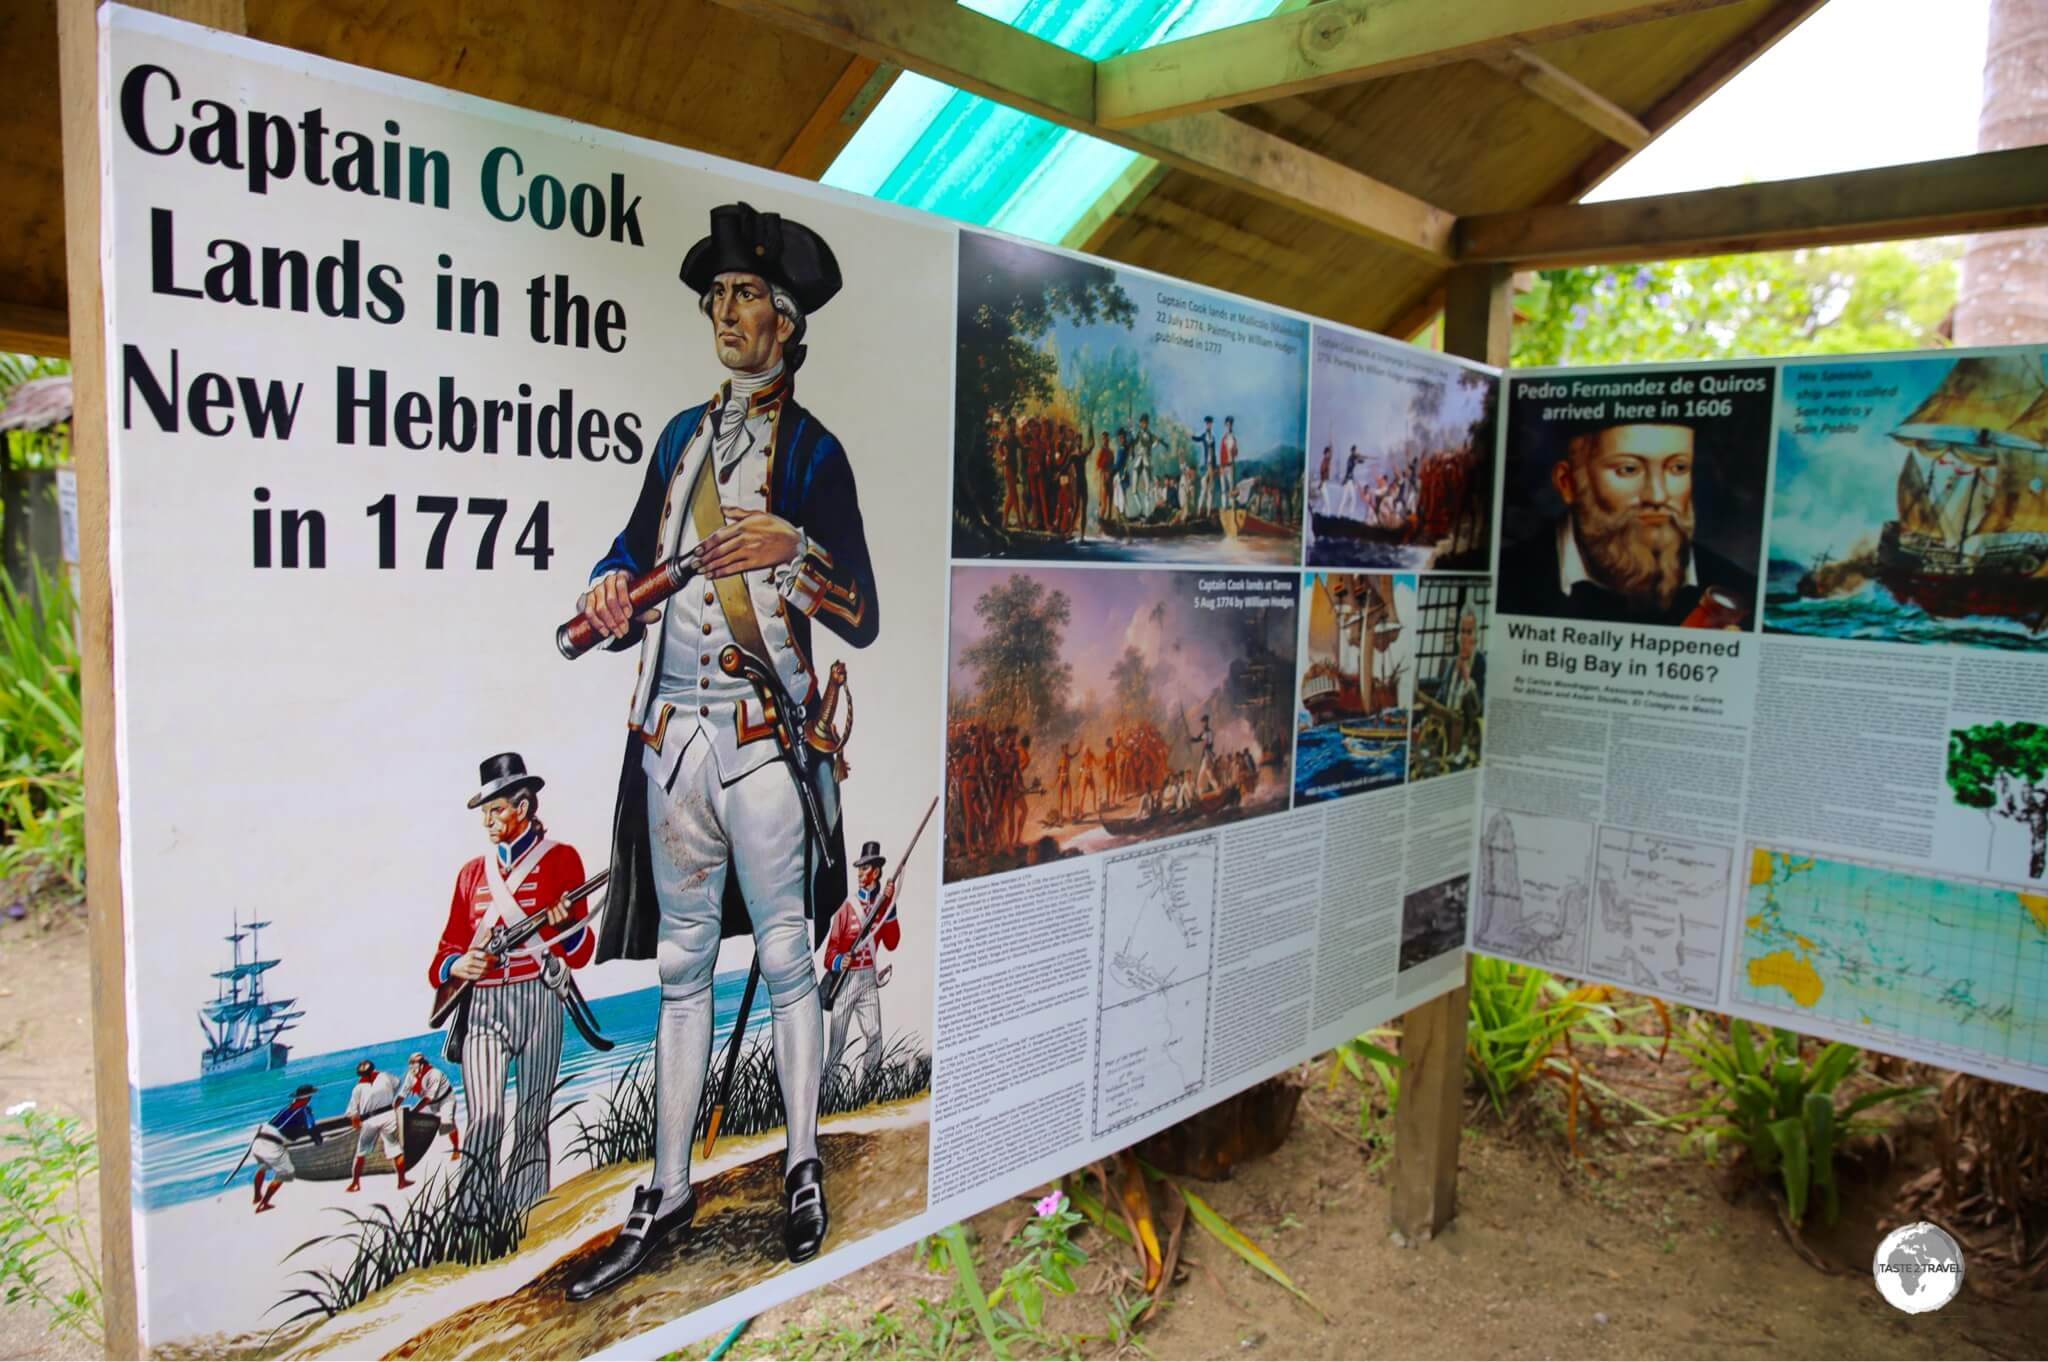 A display at the Secret Garden provides information on first European Contact with Vanuatu.